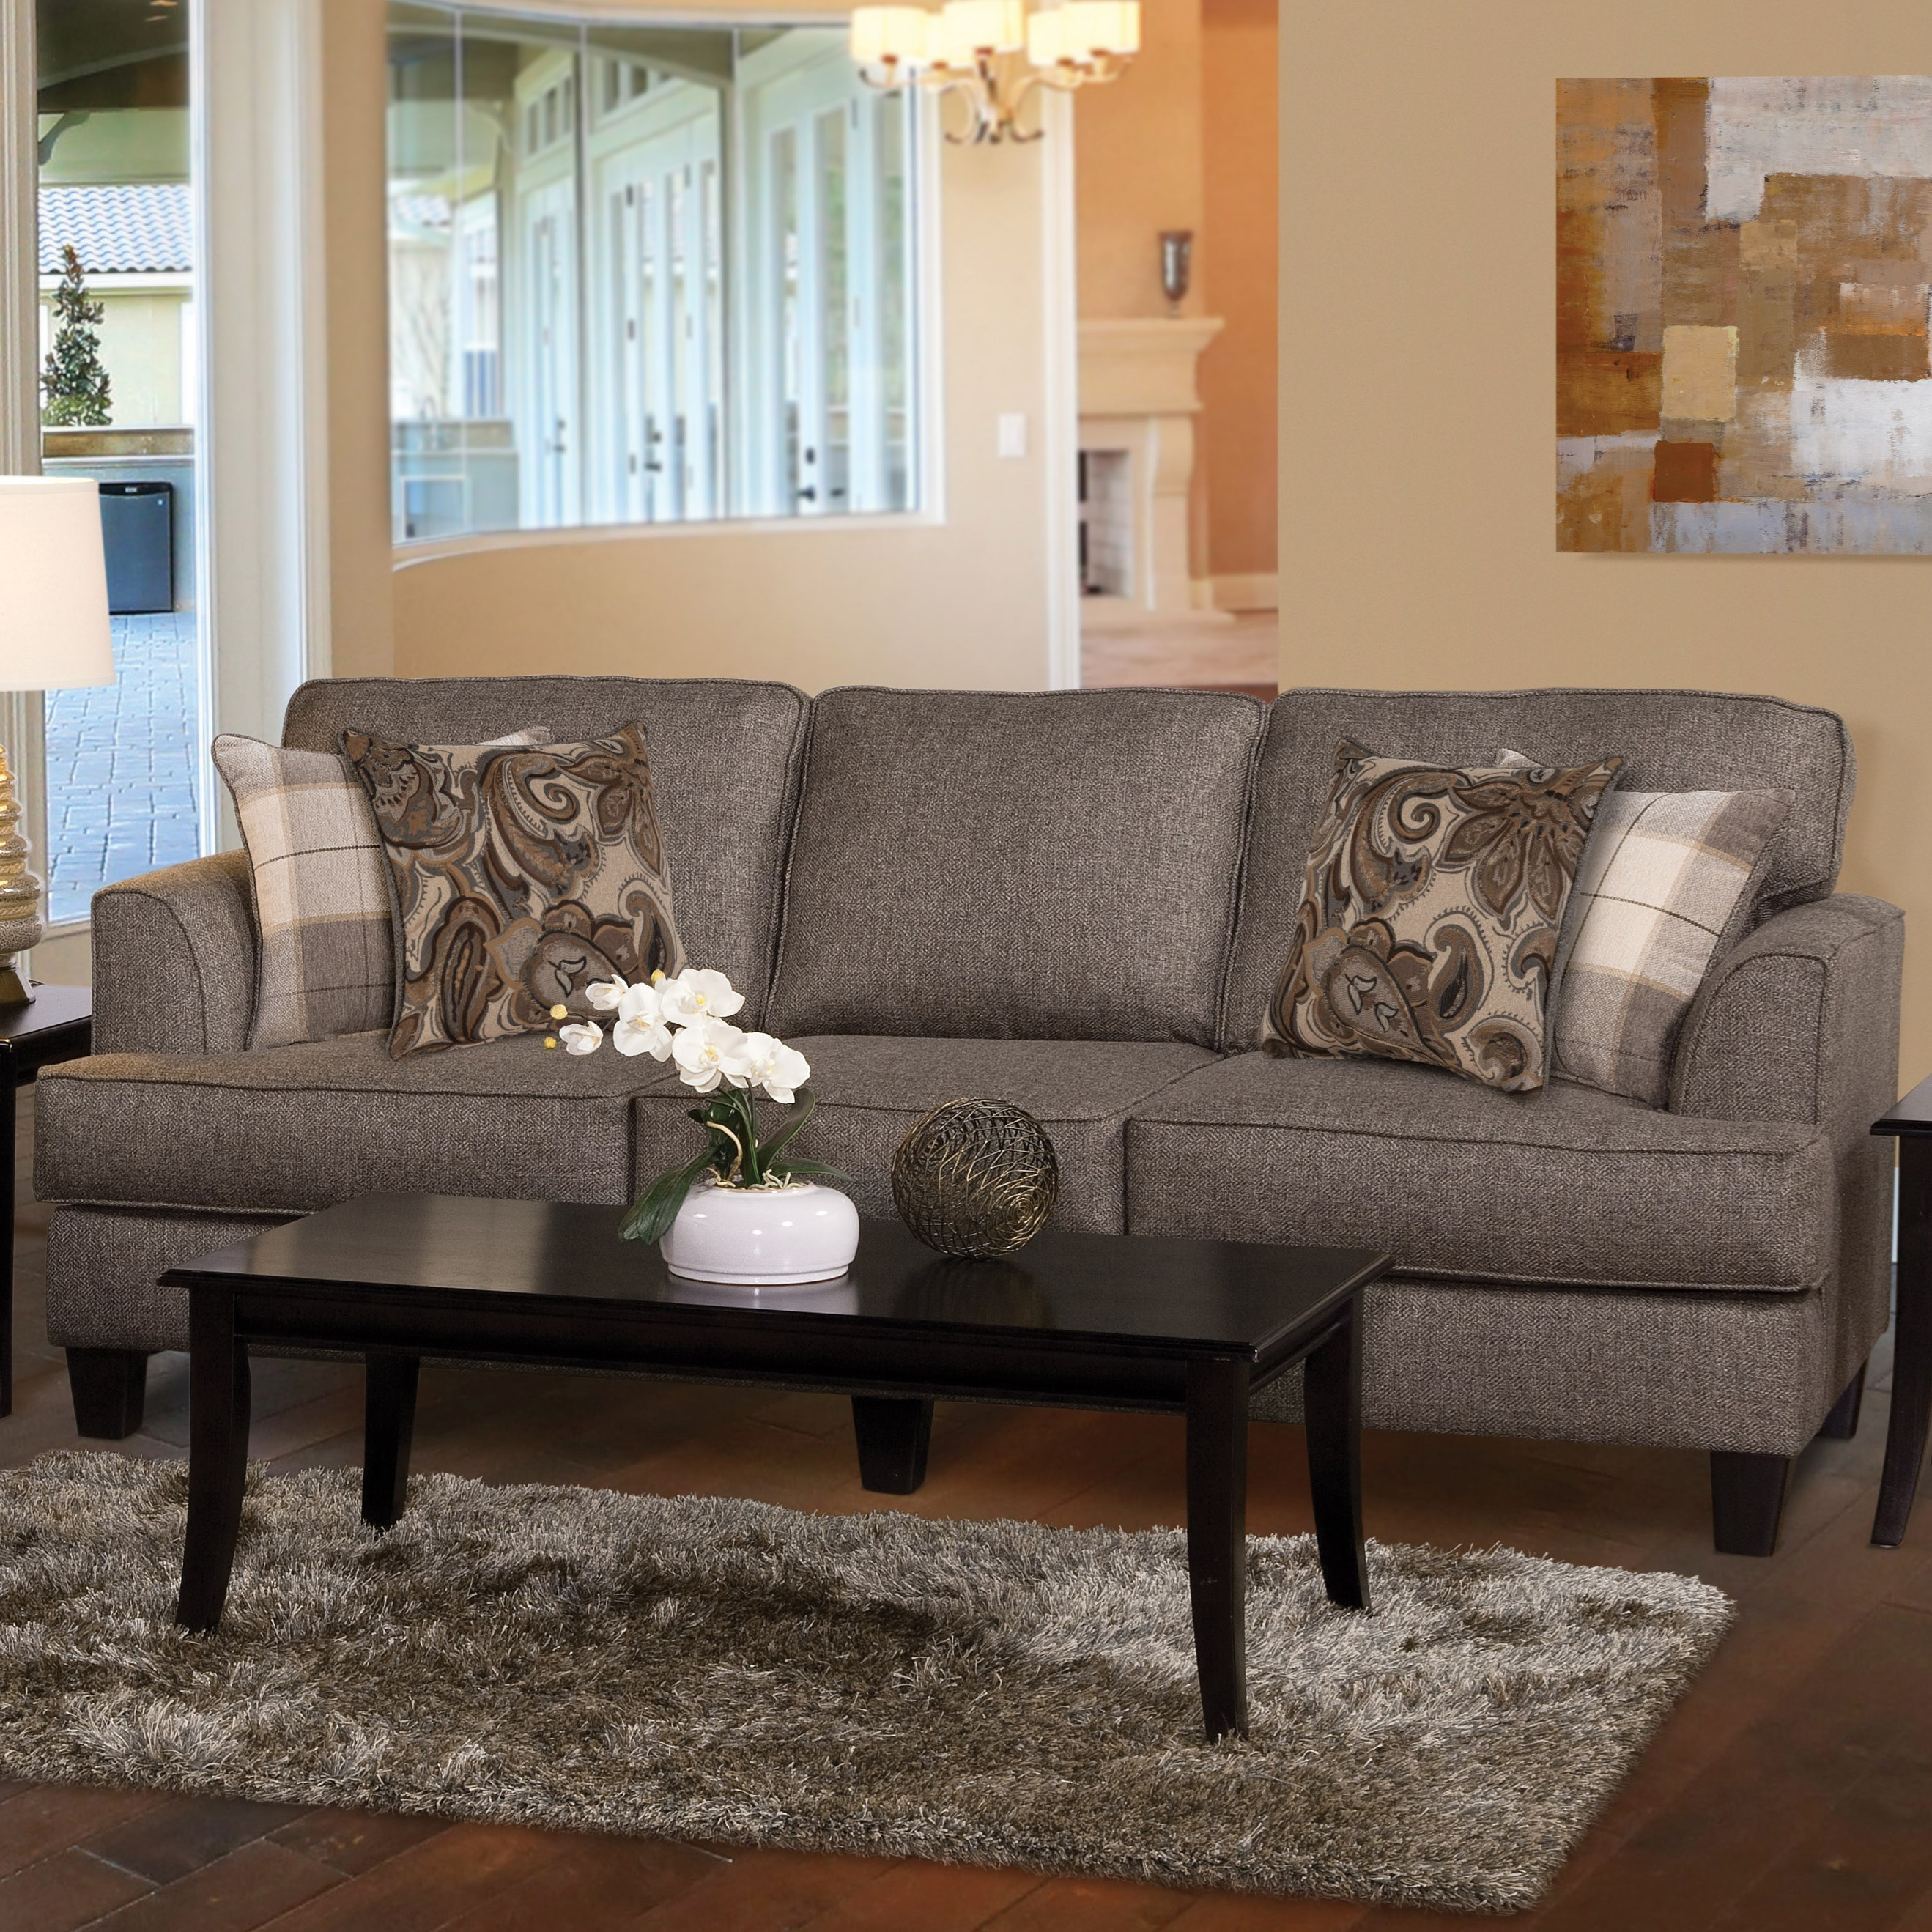 Furniture Upholstry: Serta Upholstery By Hughes Furniture 5625 Contemporary